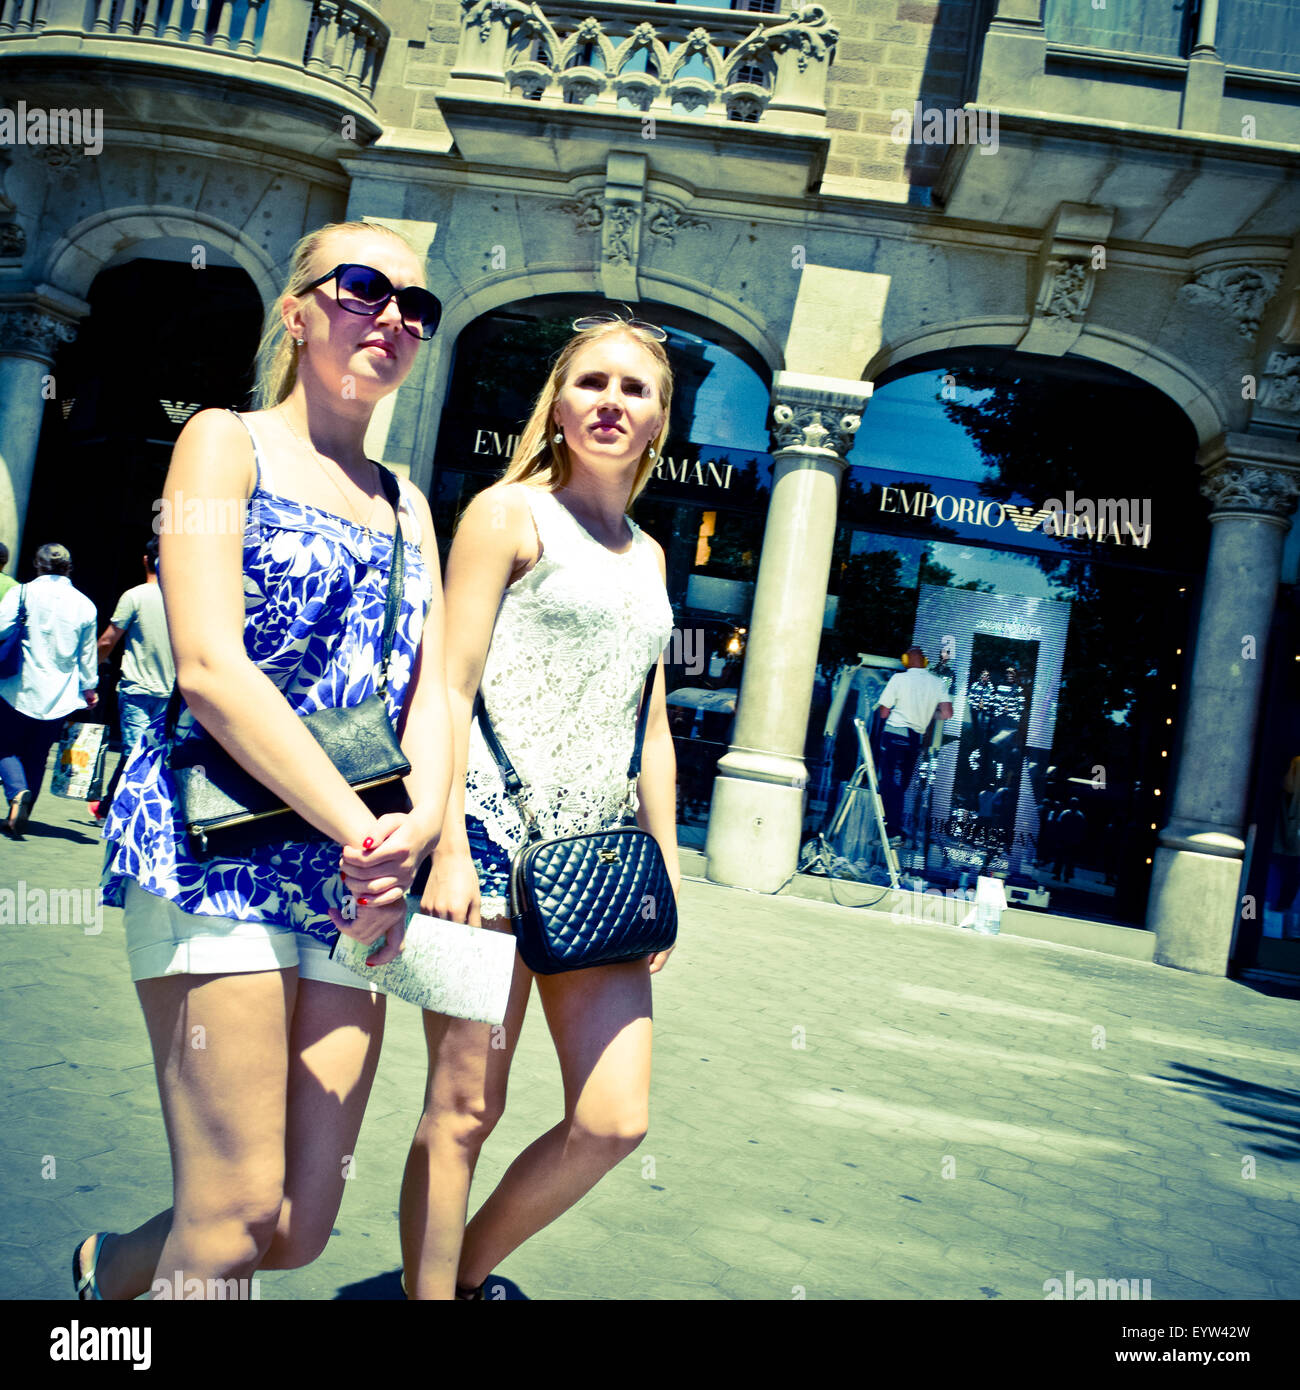 Two blond young women walking in a front of Emporio Armani store. Barcelona, Catalonia, Spain. - Stock Image